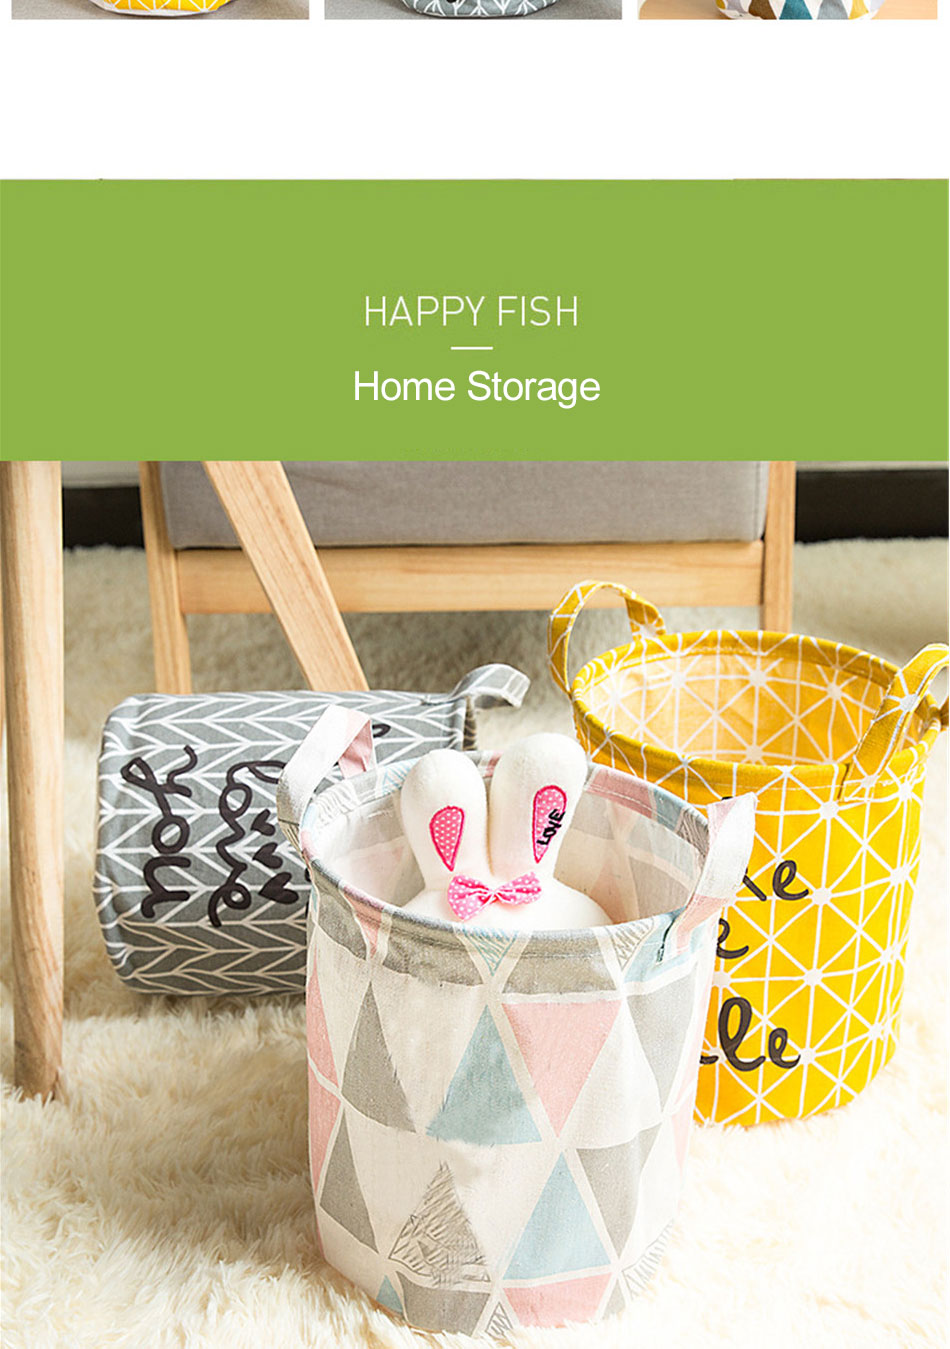 Storage Baskets Folding Laundry Basket Yellow Arrow Couple Linen Washing Clothes Barrel Bags With Handles Kids Toys Hamper Bag (4)